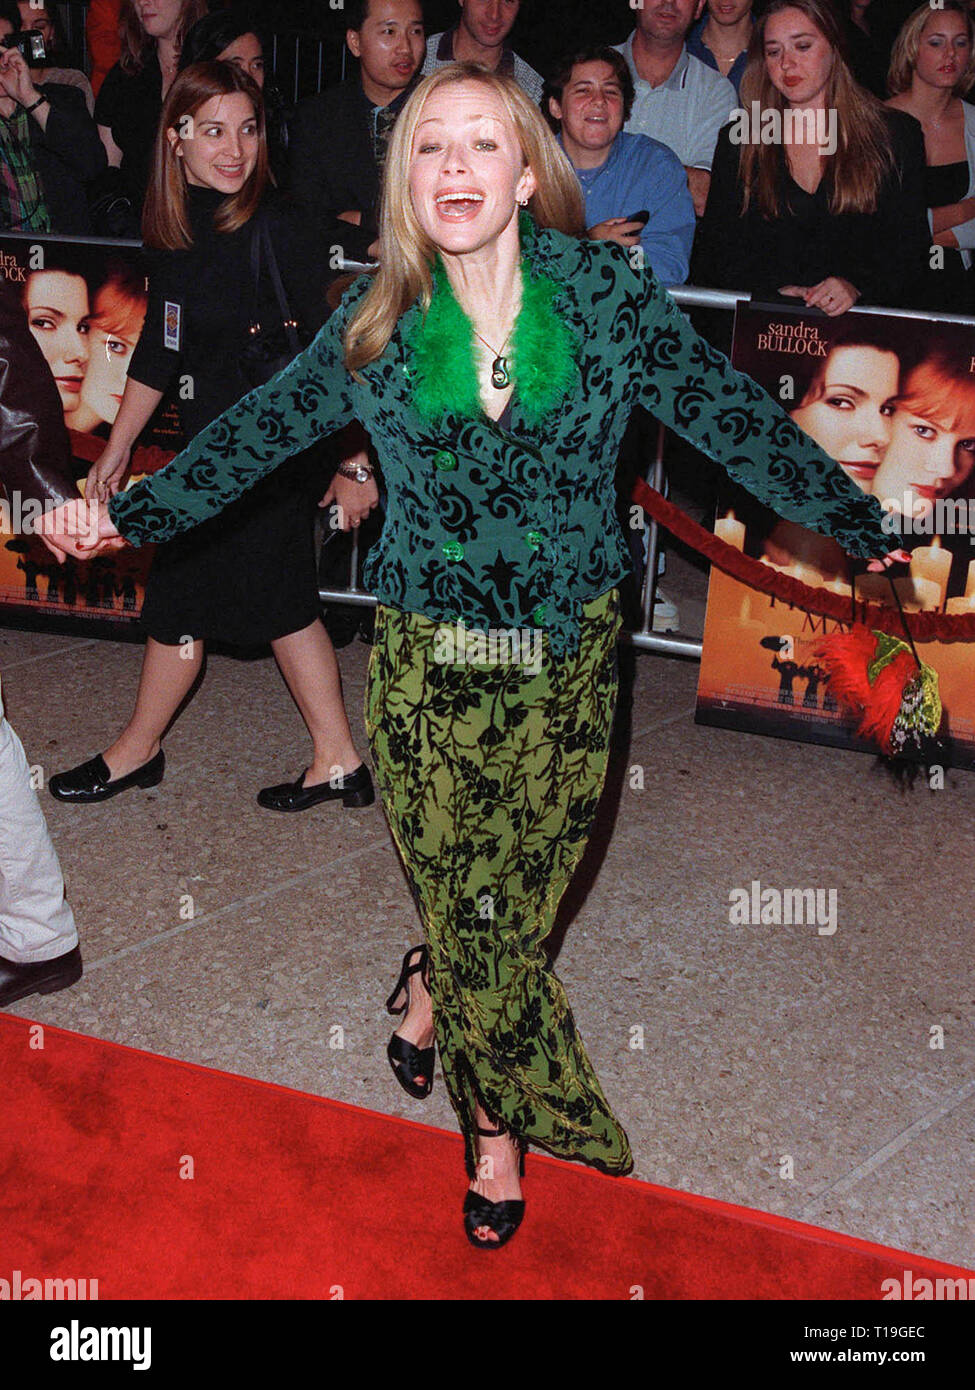 LOS ANGELES, CA - October 13, 1998:  Actress LAUREN HOLLY at the Los Angeles premiere of  'Practical Magic' which stars Sandra Bullock, Nicole Kidman, Aidan Quinn & Stockard Channing. - Stock Image